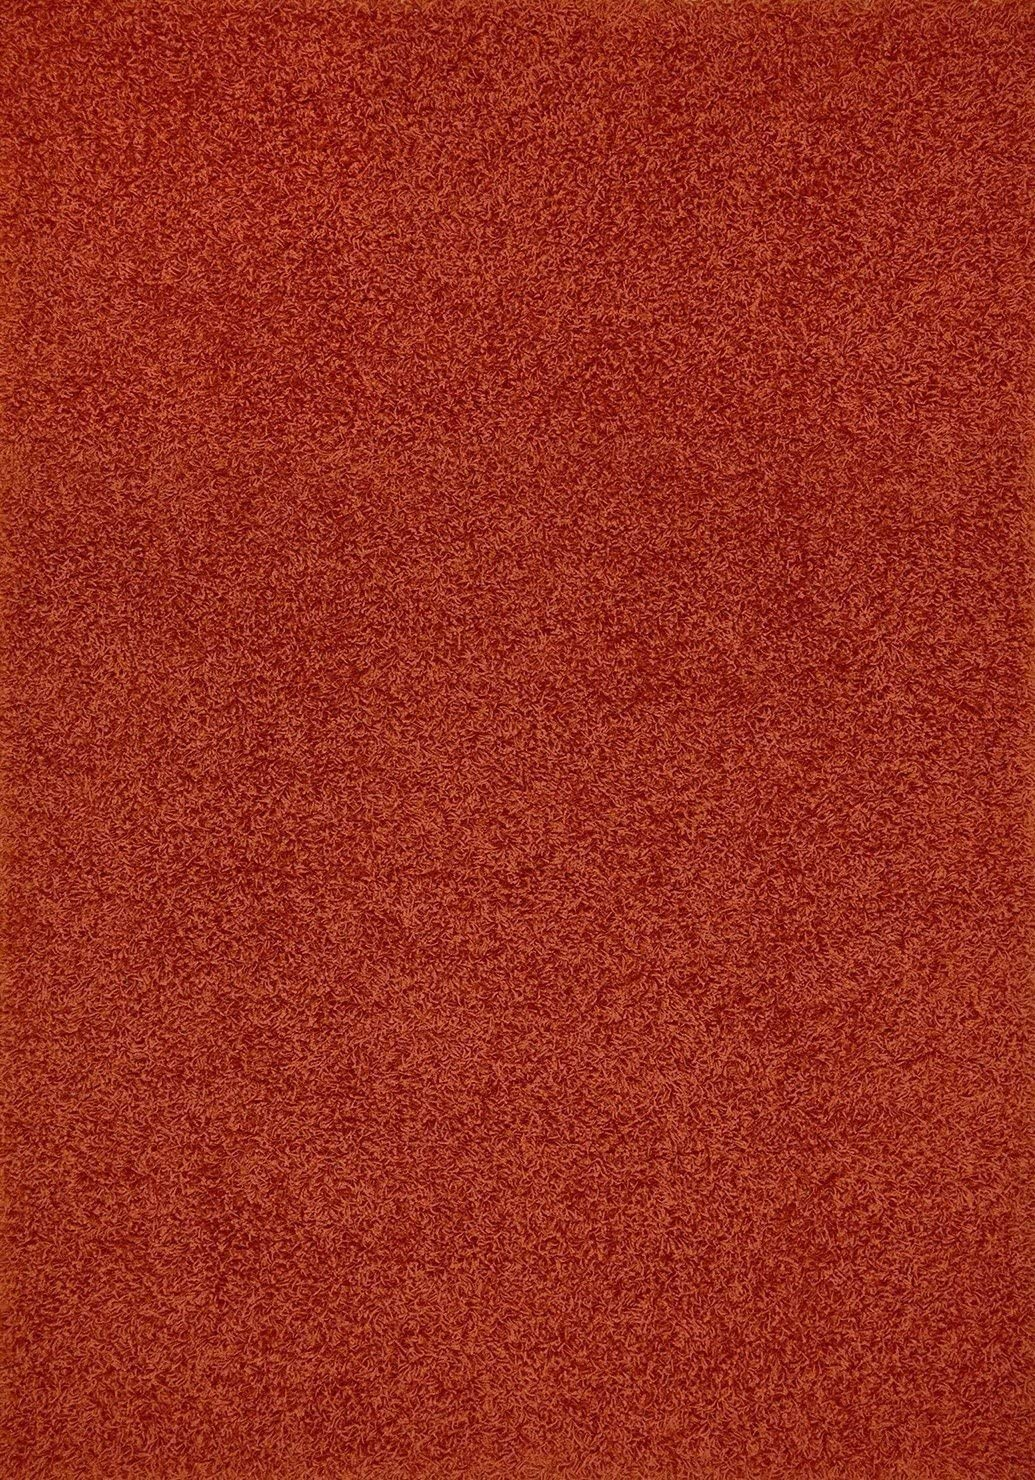 Cool Home New Shag Collection Area Rugs Rust, 8 W x10 L